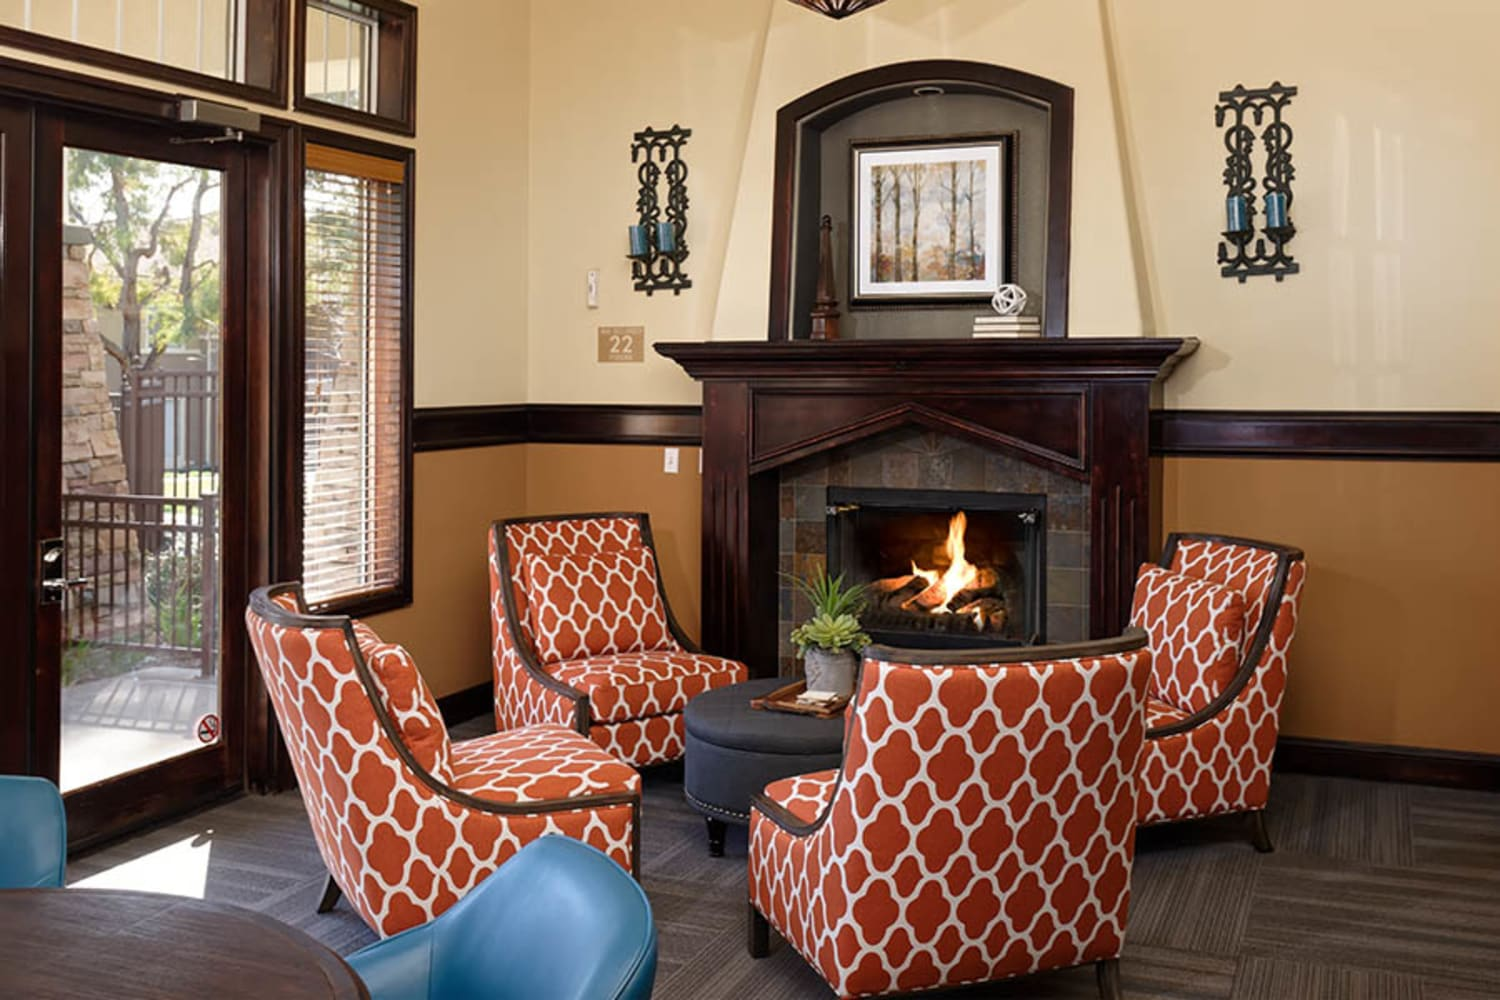 Fireplace in clubhouse at Camino Real in Rancho Cucamonga, California